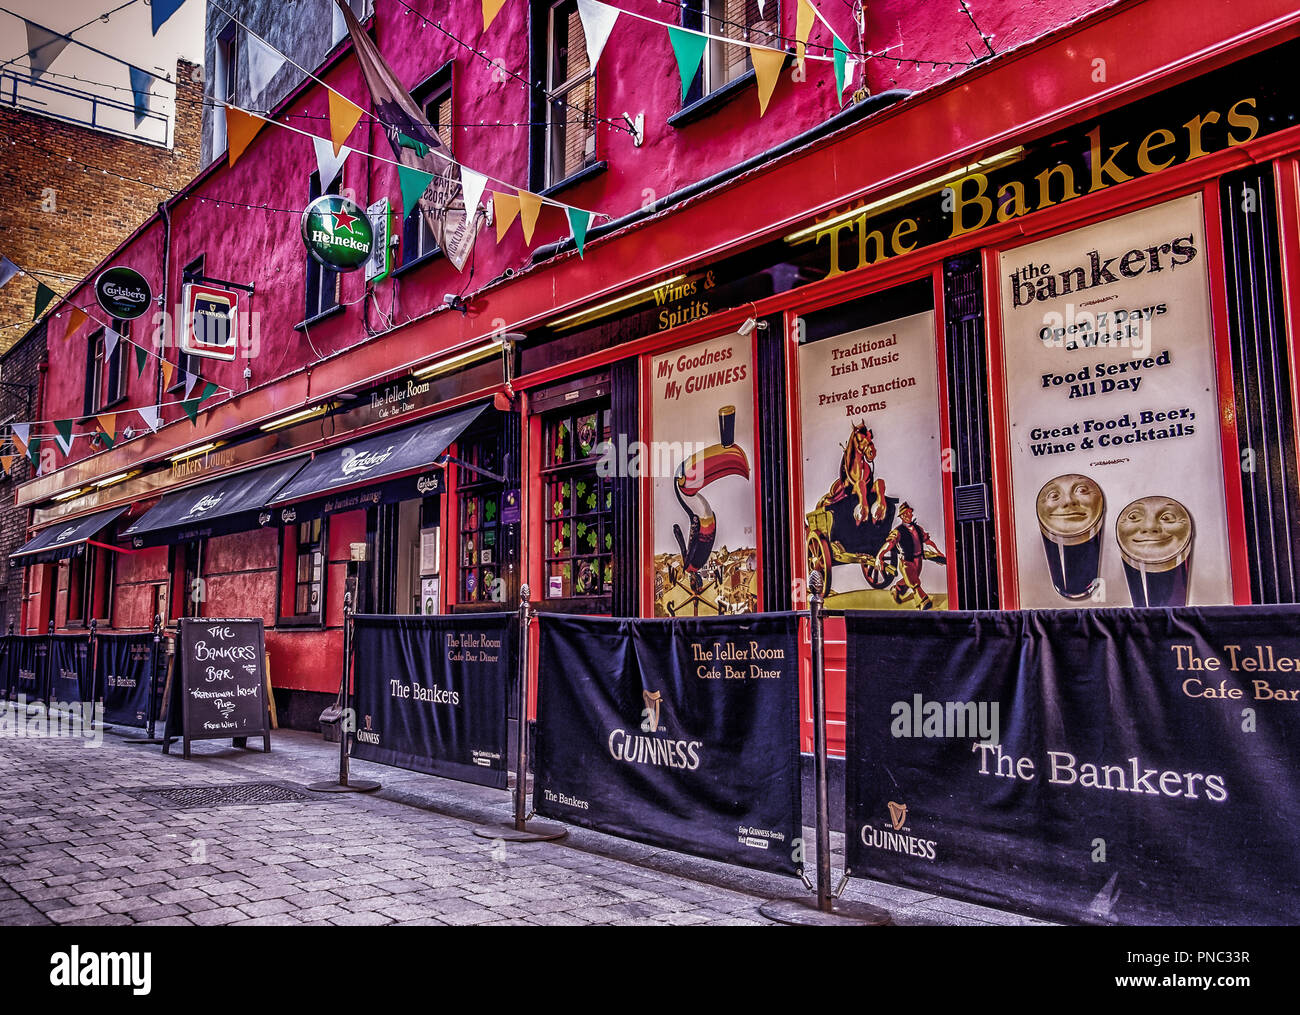 Dublin, Ireland, March 2018, outside The Bankers (Pub, bar, restaurant) in Dame - Stock Image